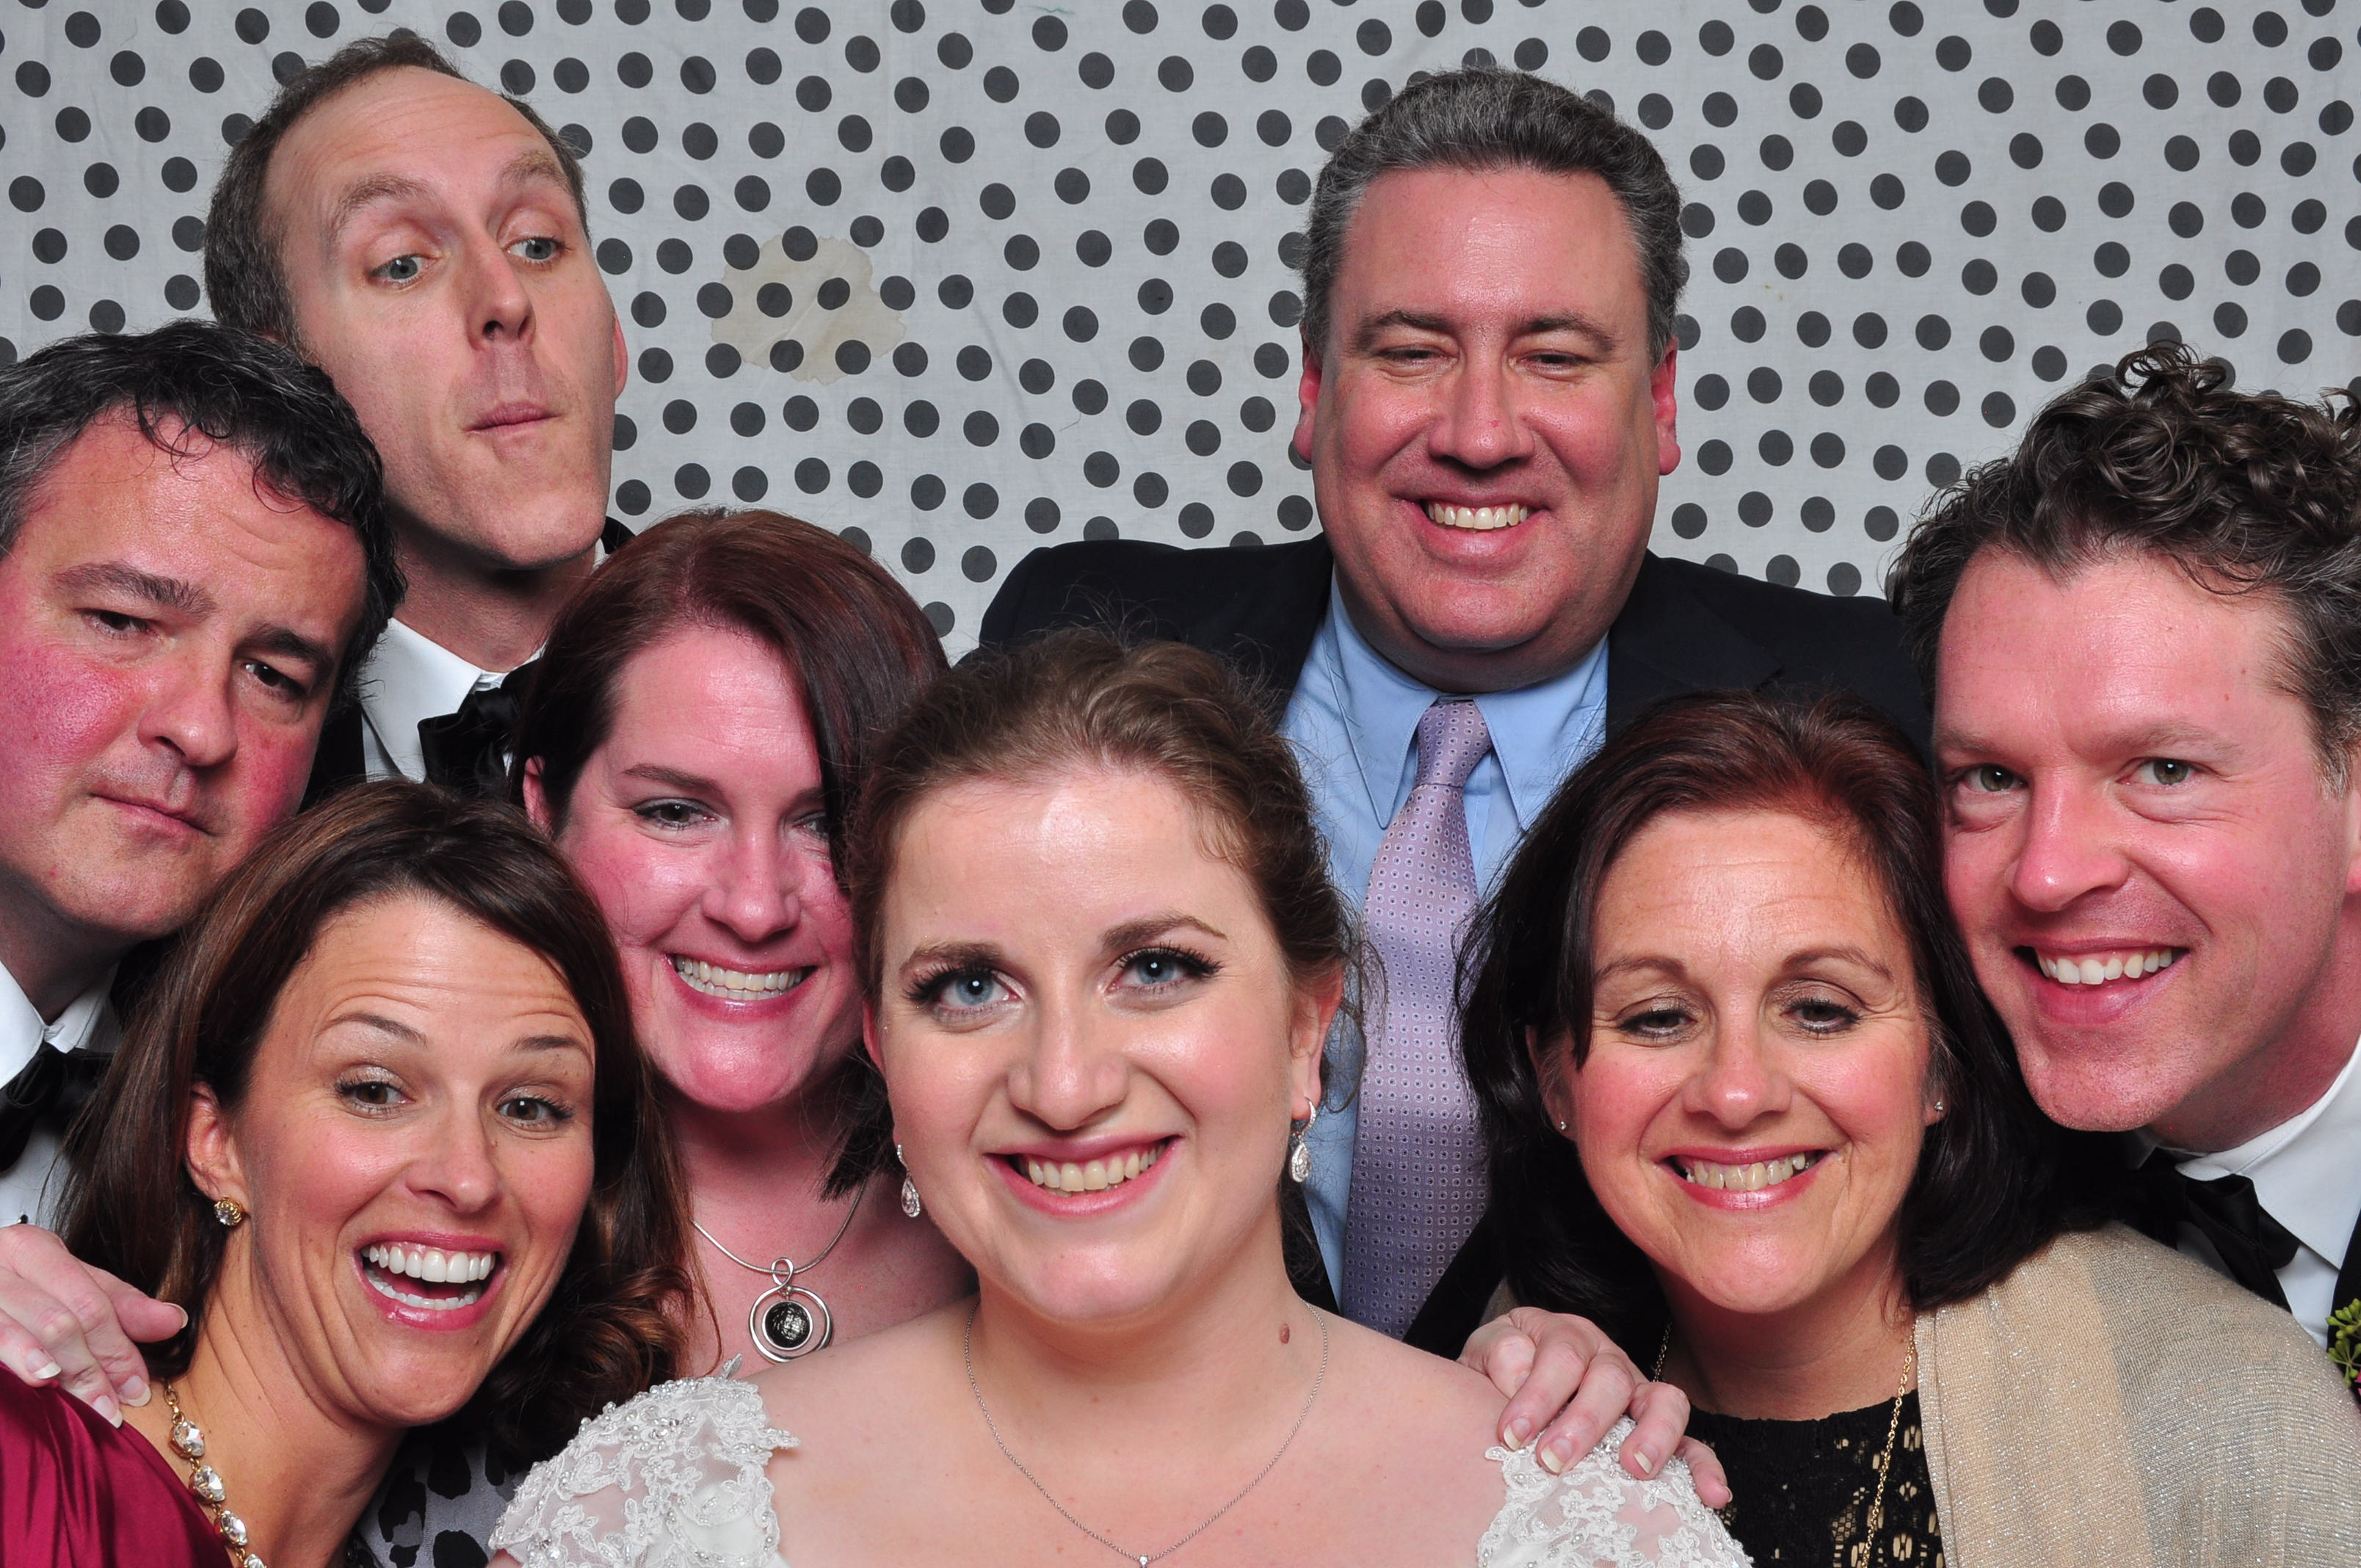 Atlanta Wedding Photobooth Retals LeahAndMark & Co.